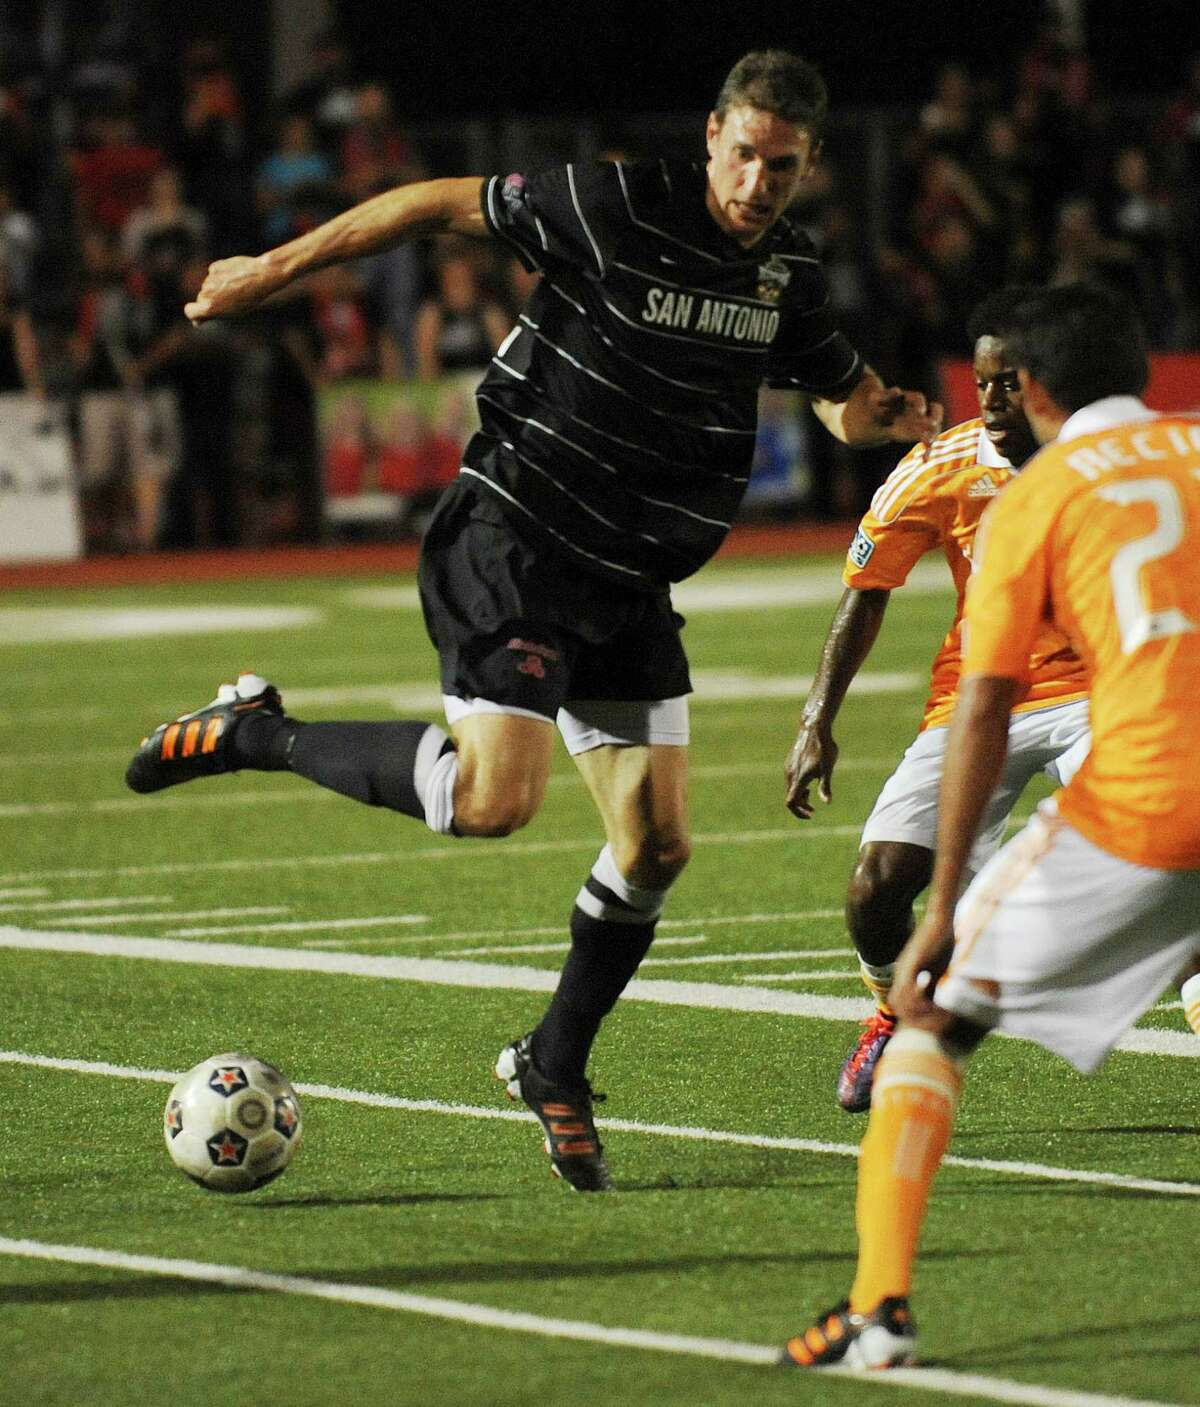 Aaron Pitchkolan of the San Antonio Scorpions controls the ball during U.S. Open Cup match action against the Houston Dynamo at Heroes Stadium on Tuesday, May 29, 2012.